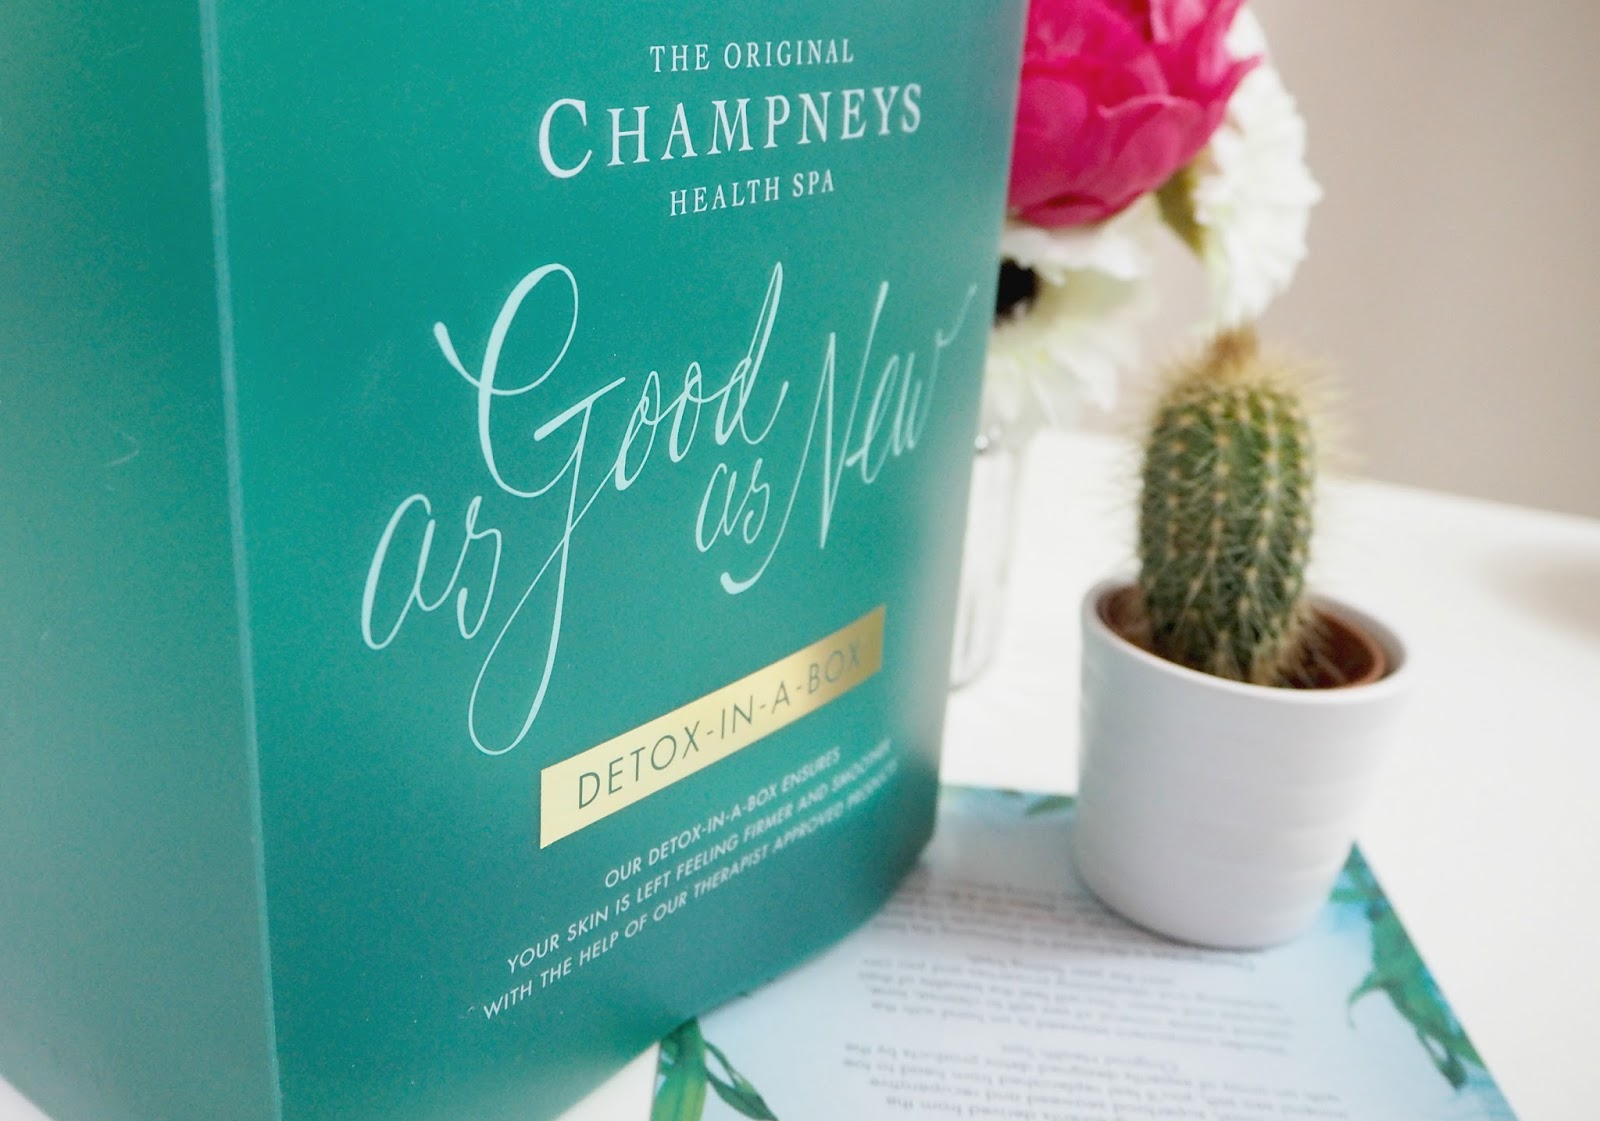 champneys-detox-in-a-box-review-copper-garden-beauty-post-blogger